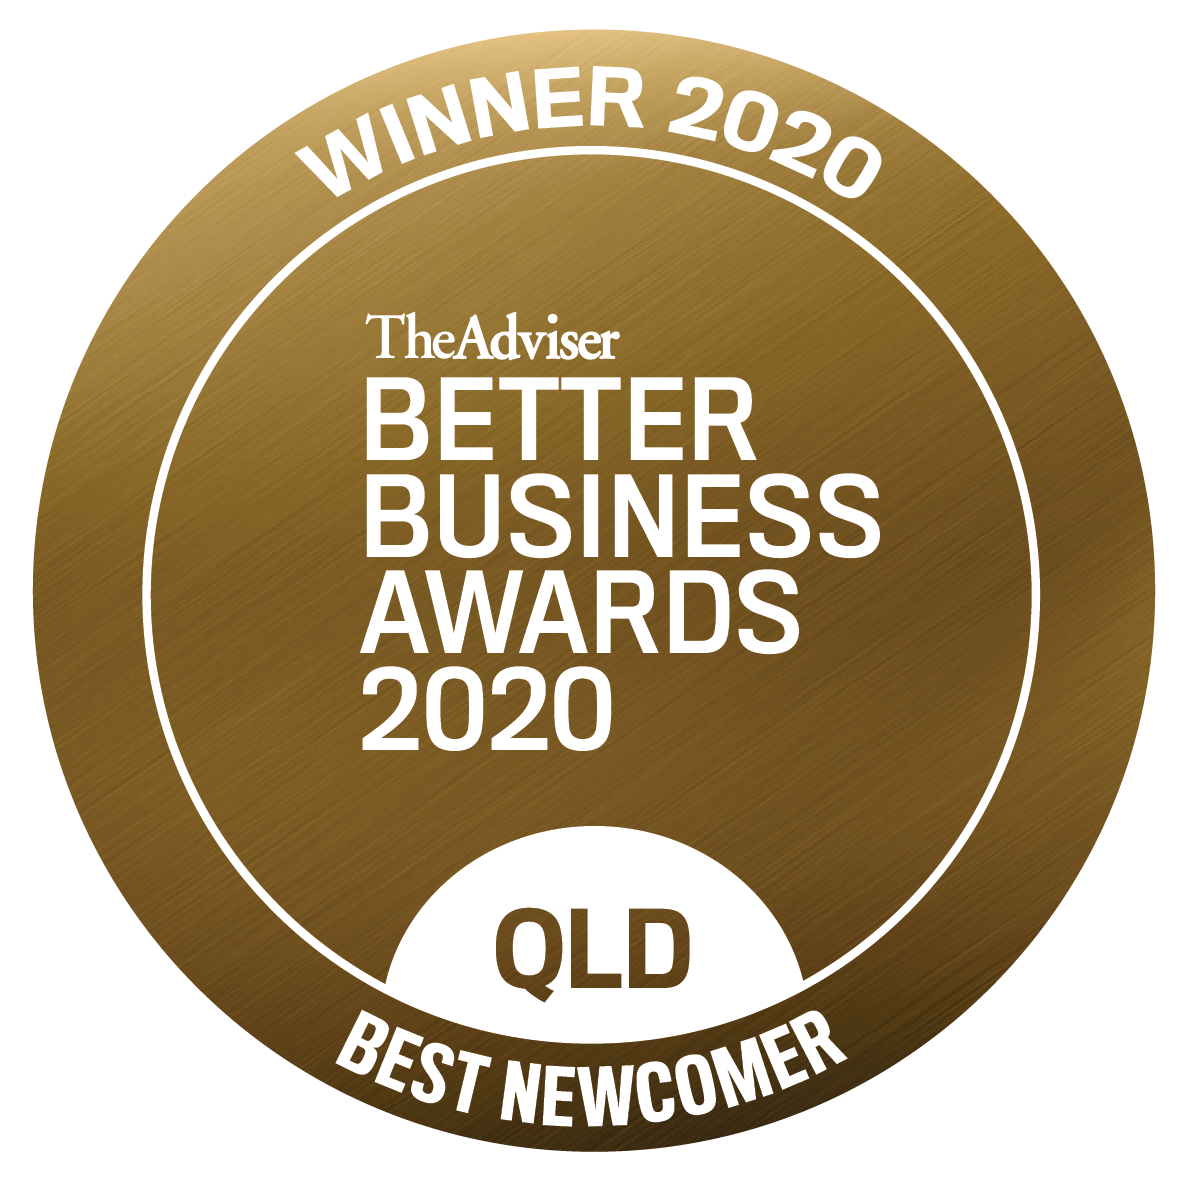 Zac Godman won the Queensland's Best Newcomer Award 2020 at the Better Business Awards